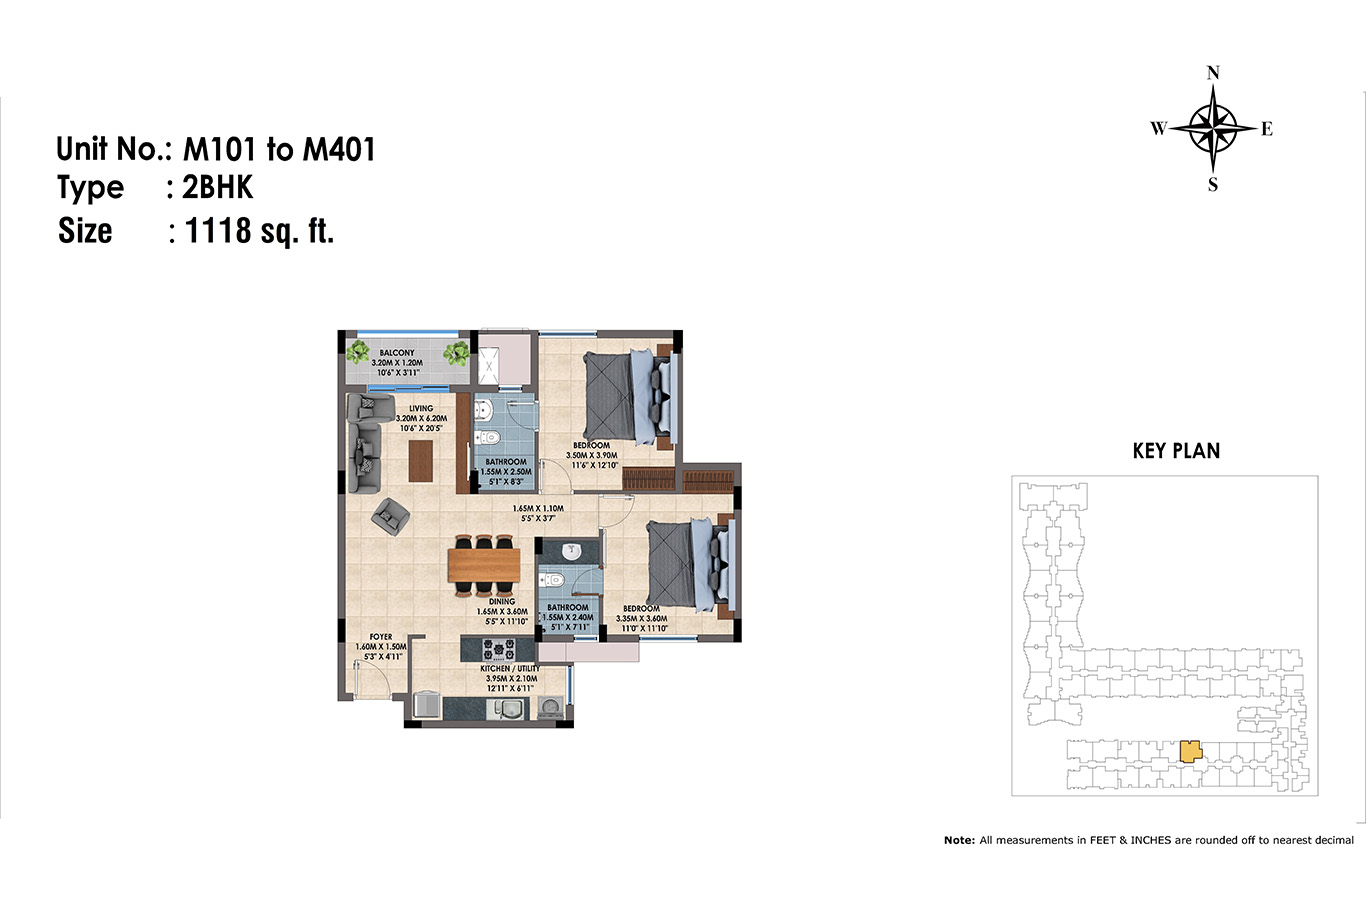 M101 to 401(2BHK)